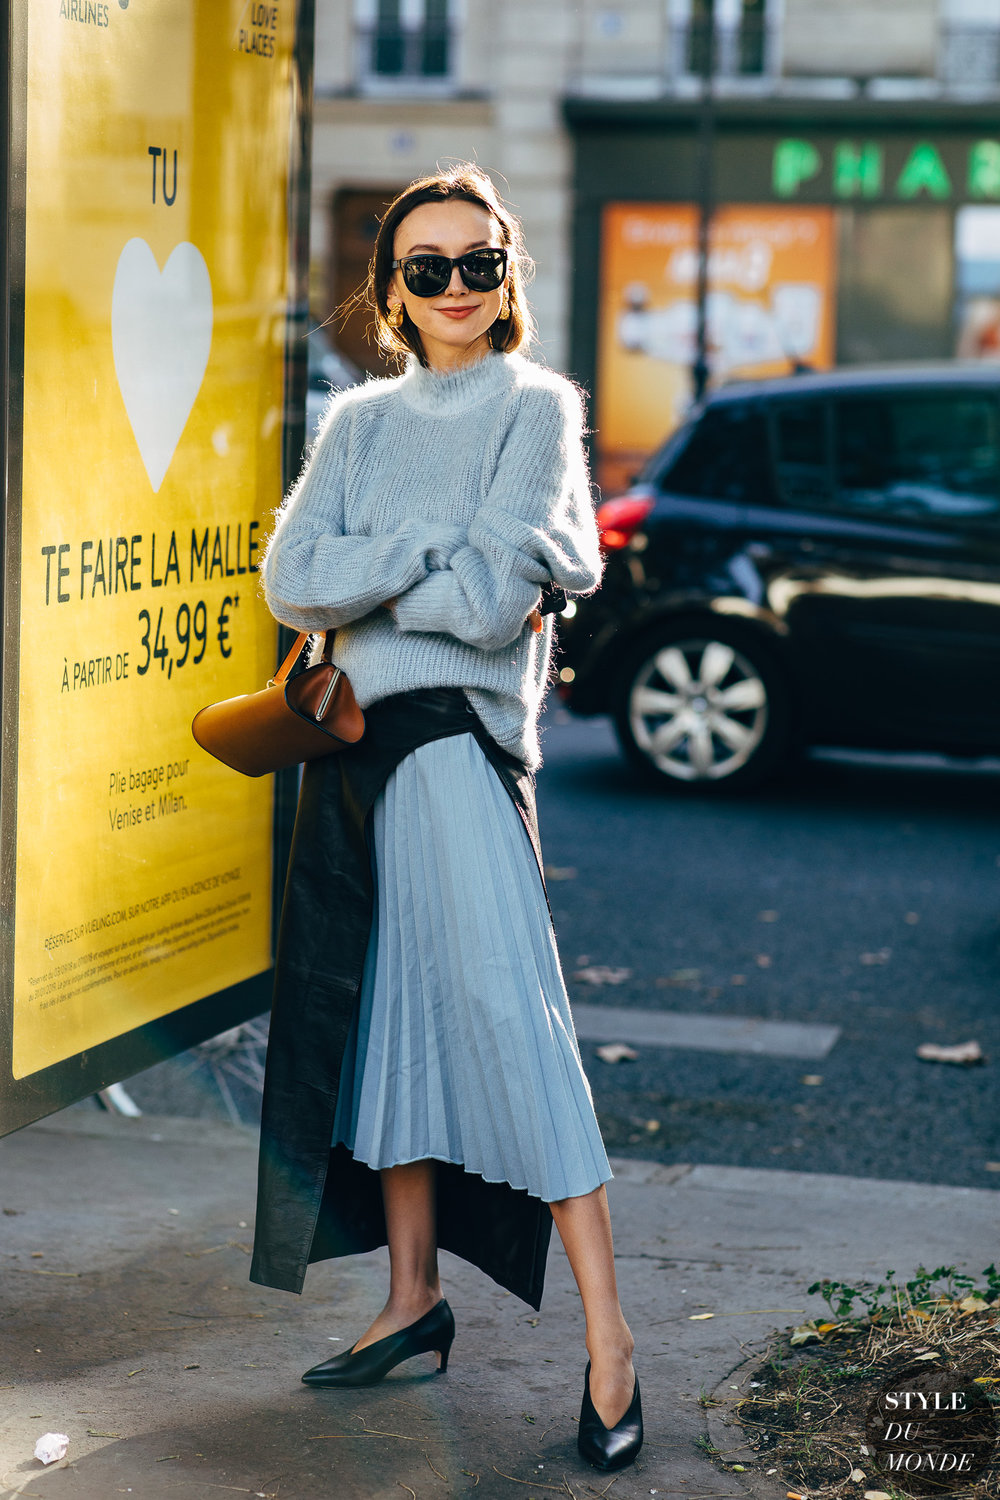 Beatrice-Gutu-Paris-SS19-day-2-by-STYLEDUMONDE-Street-Style-Fashion-Photography20180925_48A0362.jpg